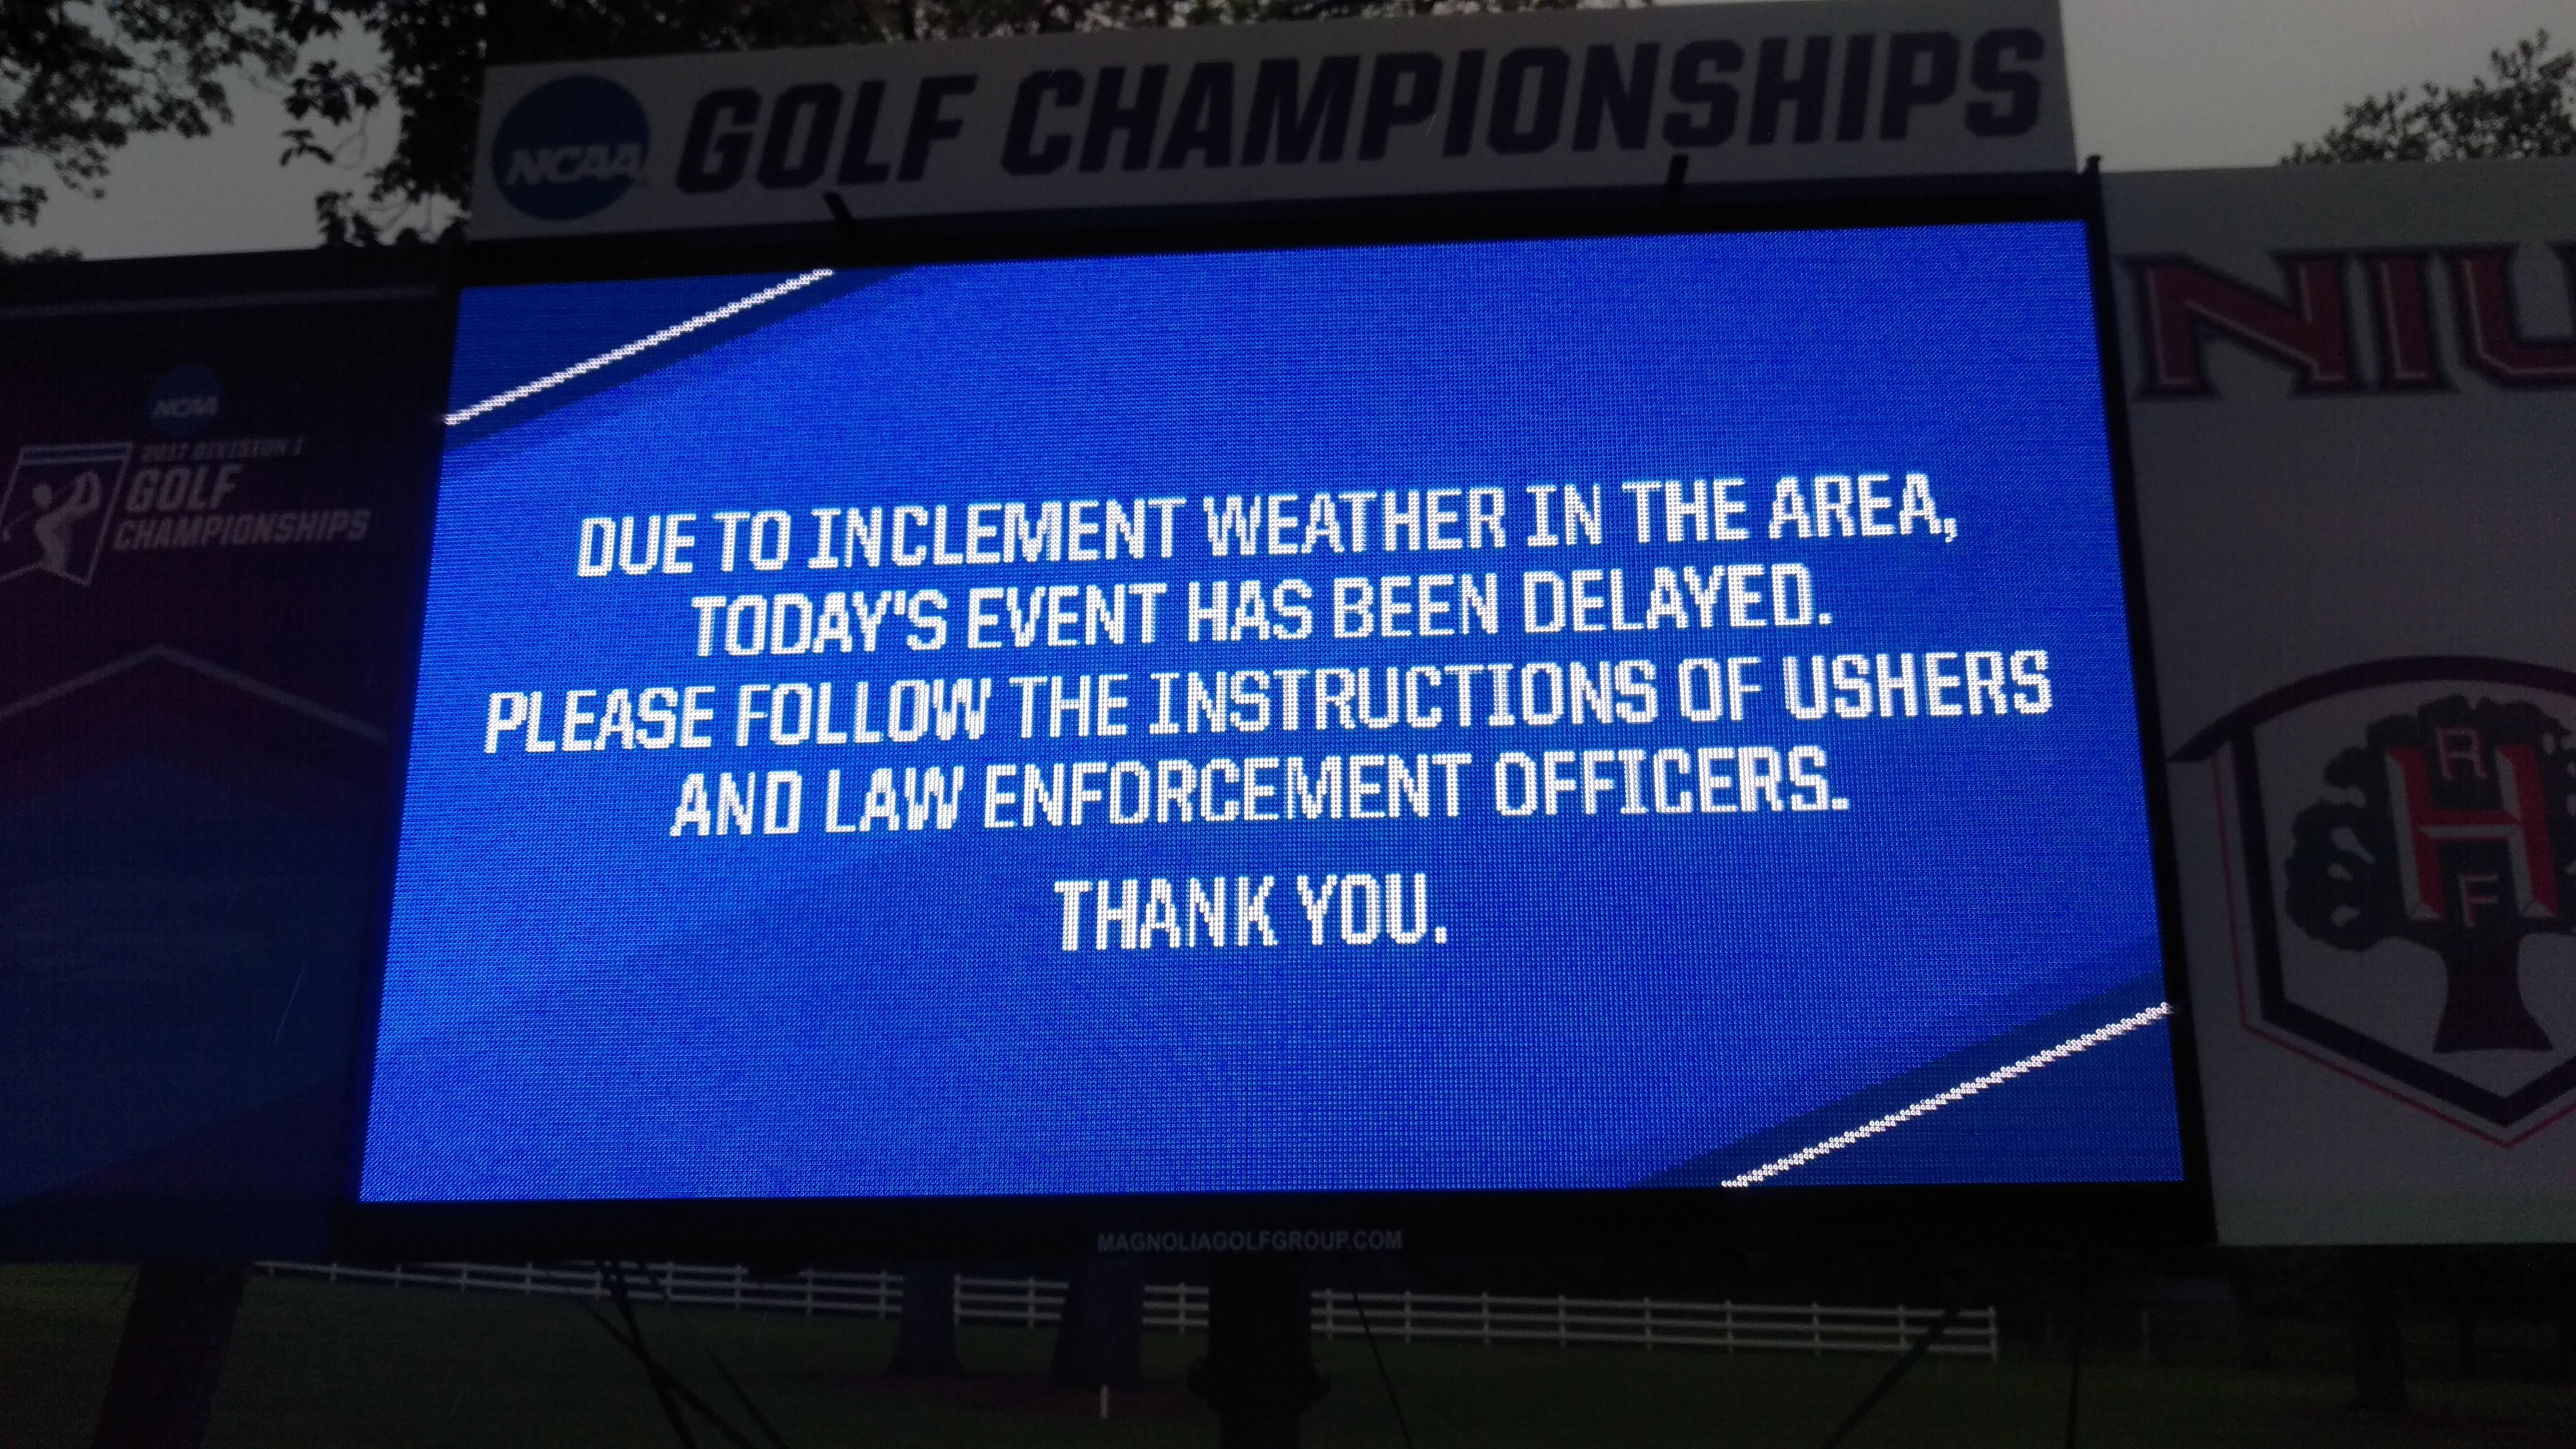 Weather Delay at NCAA Golf Championships